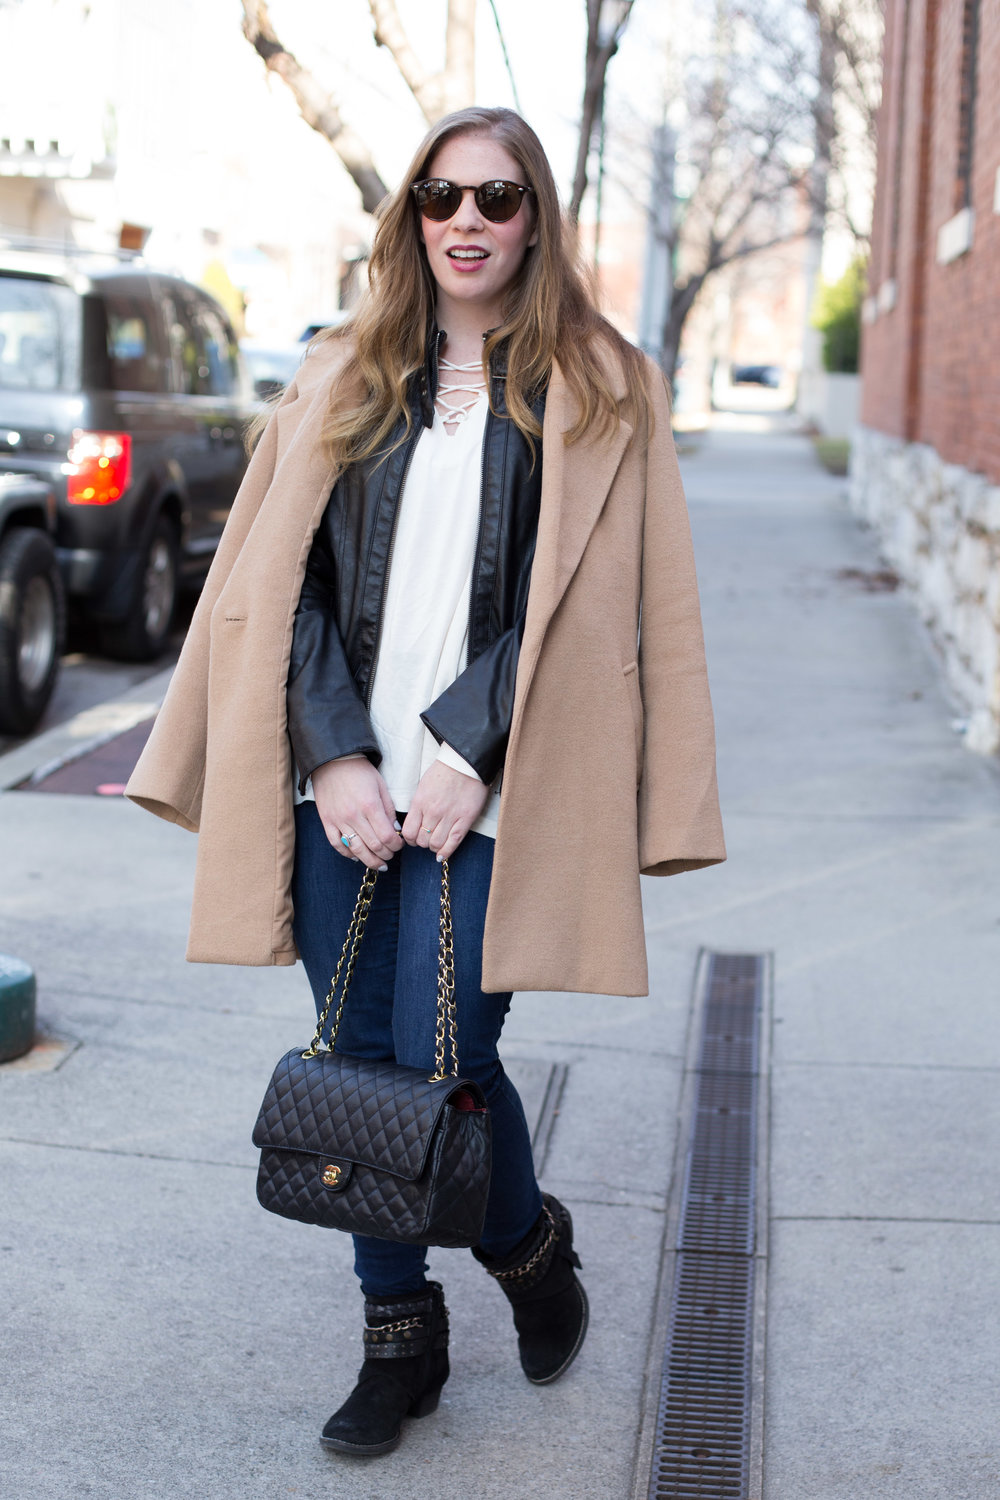 I can't get enough winter weather layering basics, like this leather jacket, overcoat in the perfect shade of camel, and simple blouse with lace-up detail.